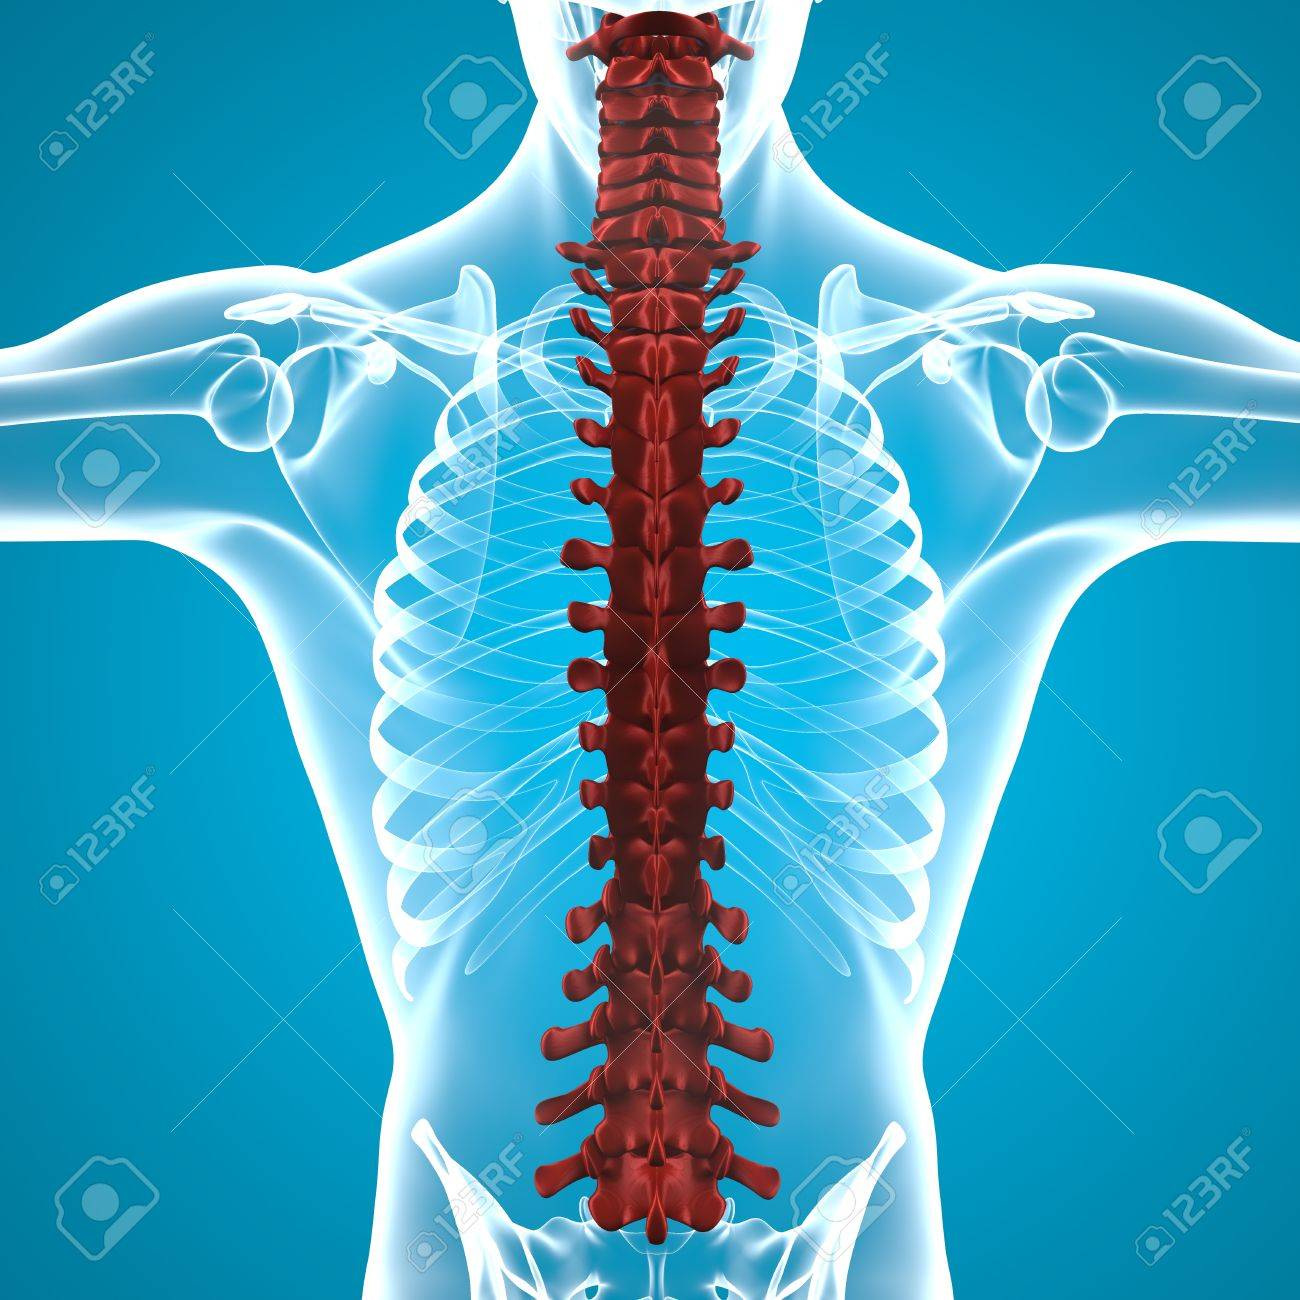 Human Body Spine Anatomy Stock Photo, Picture And Royalty Free Image ...